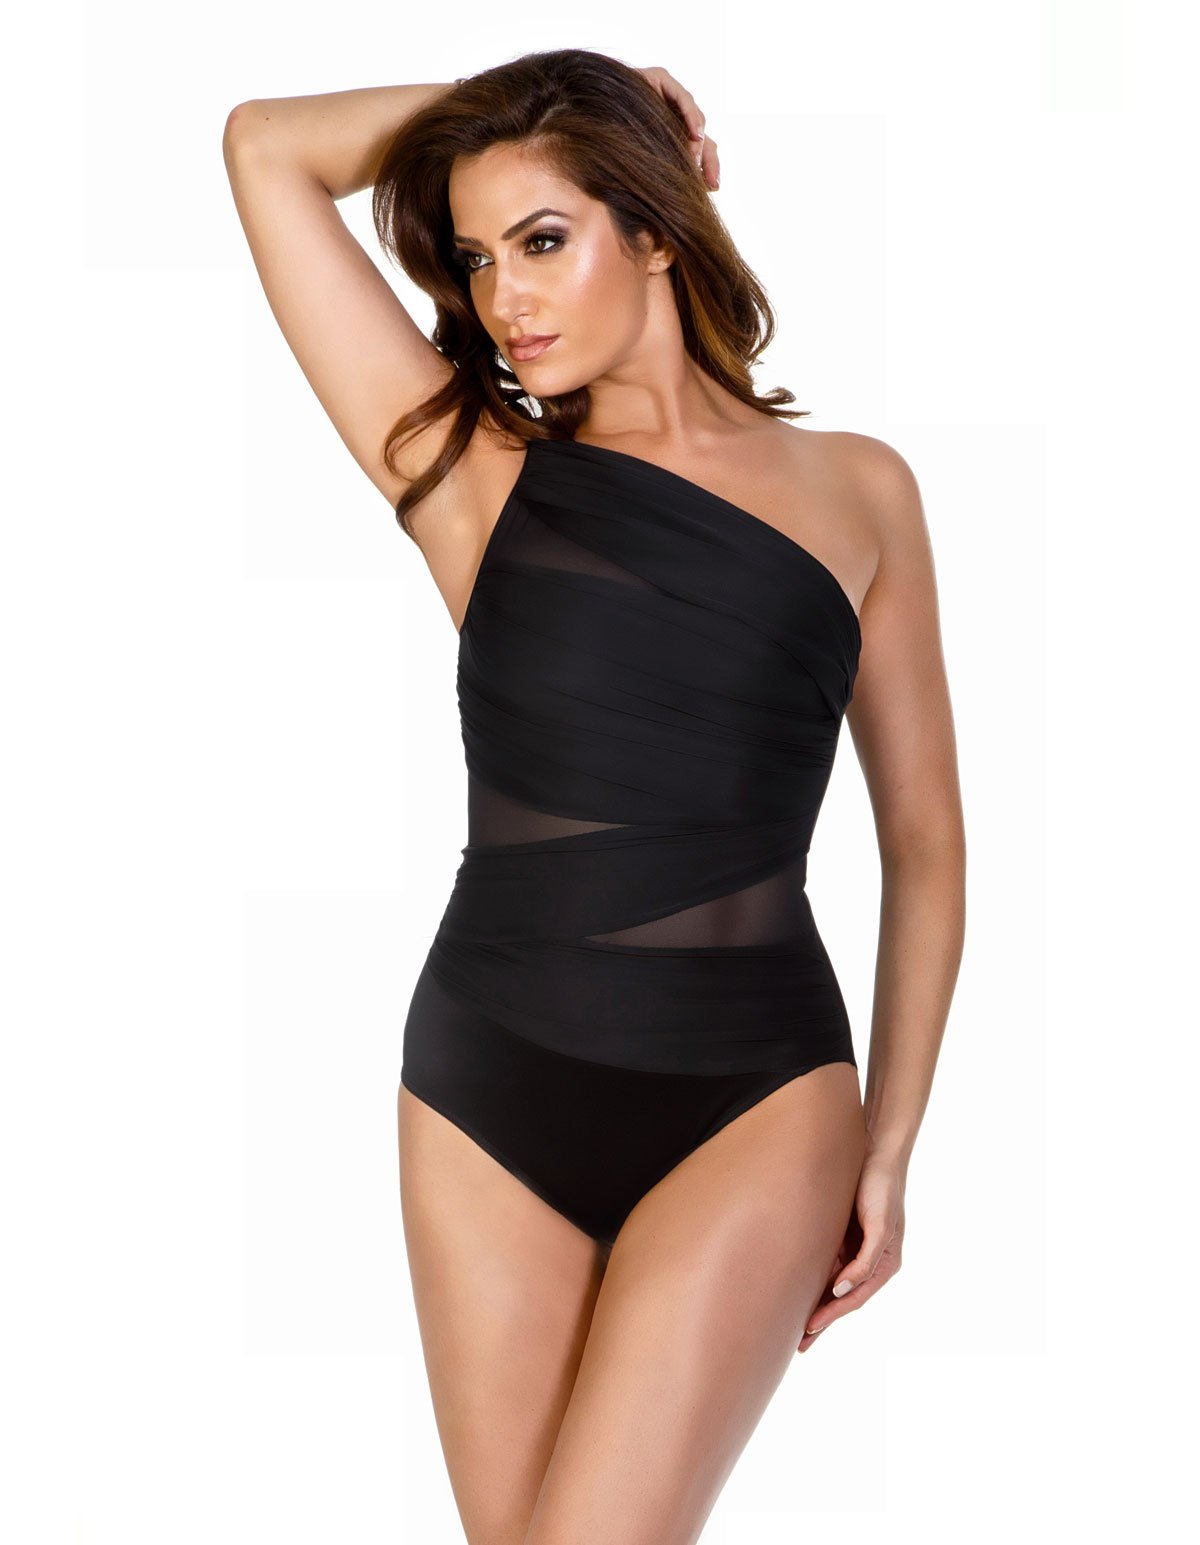 Miraclesuit Women's Network Jena One-Piece Black 12 by Miraclesuit